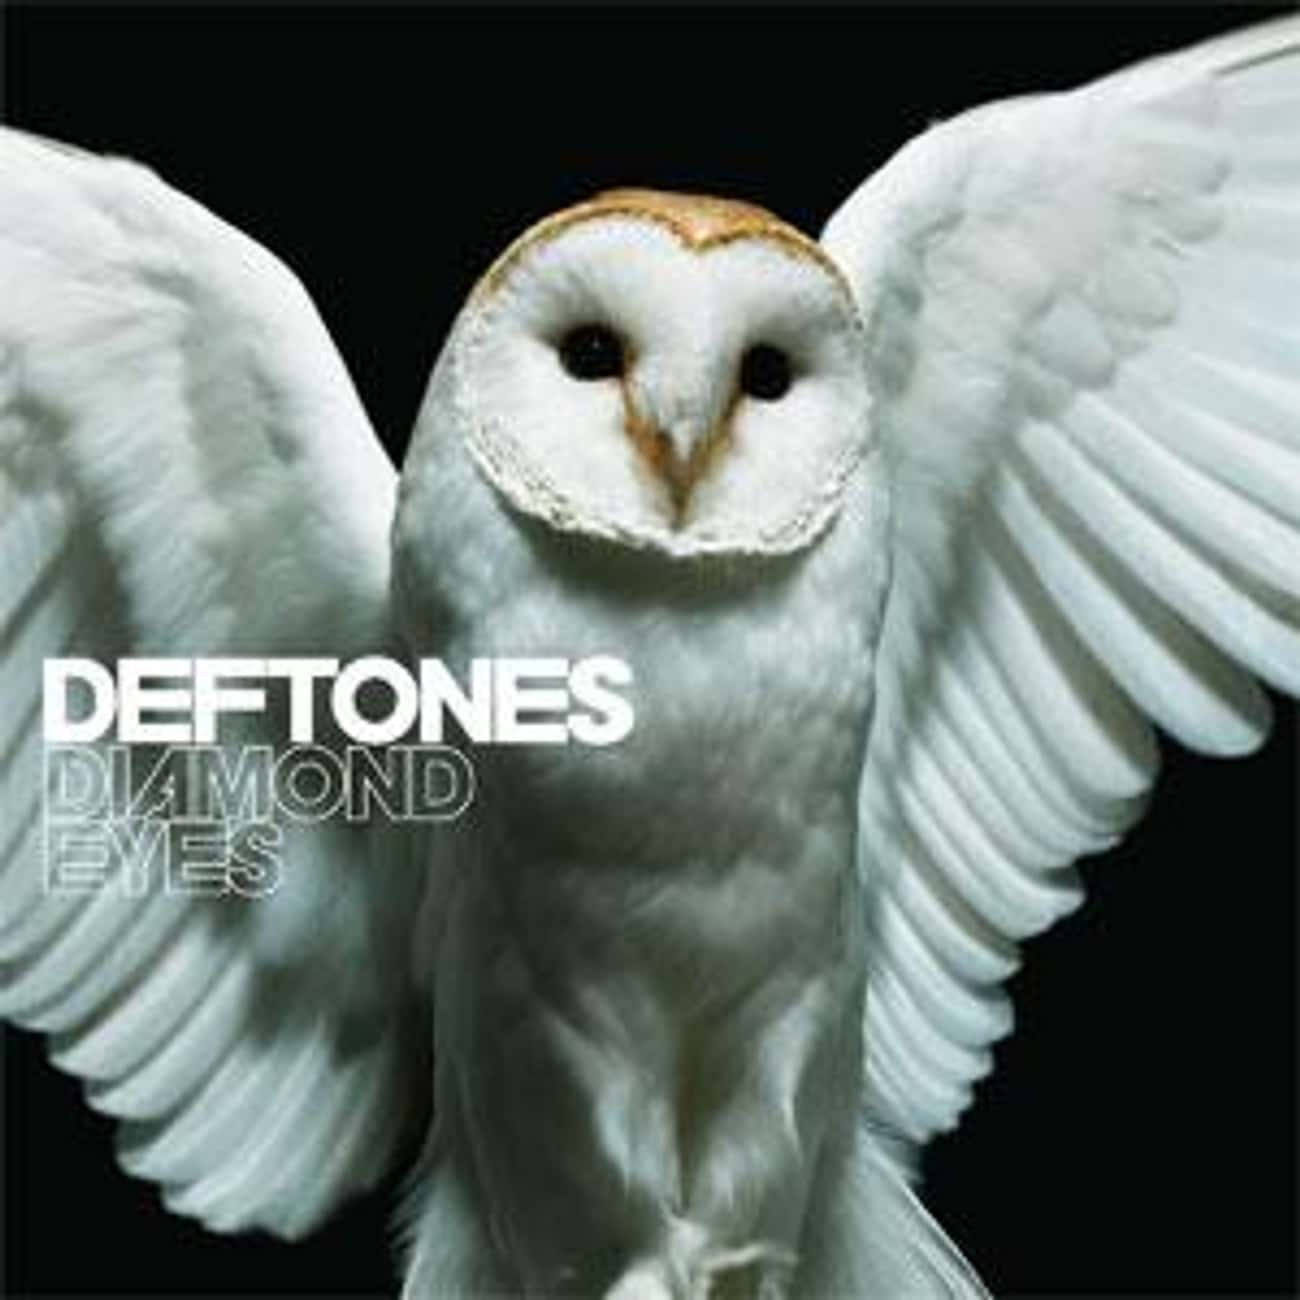 Diamond Eyes is listed (or ranked) 2 on the list The Best Deftones Albums of All Time